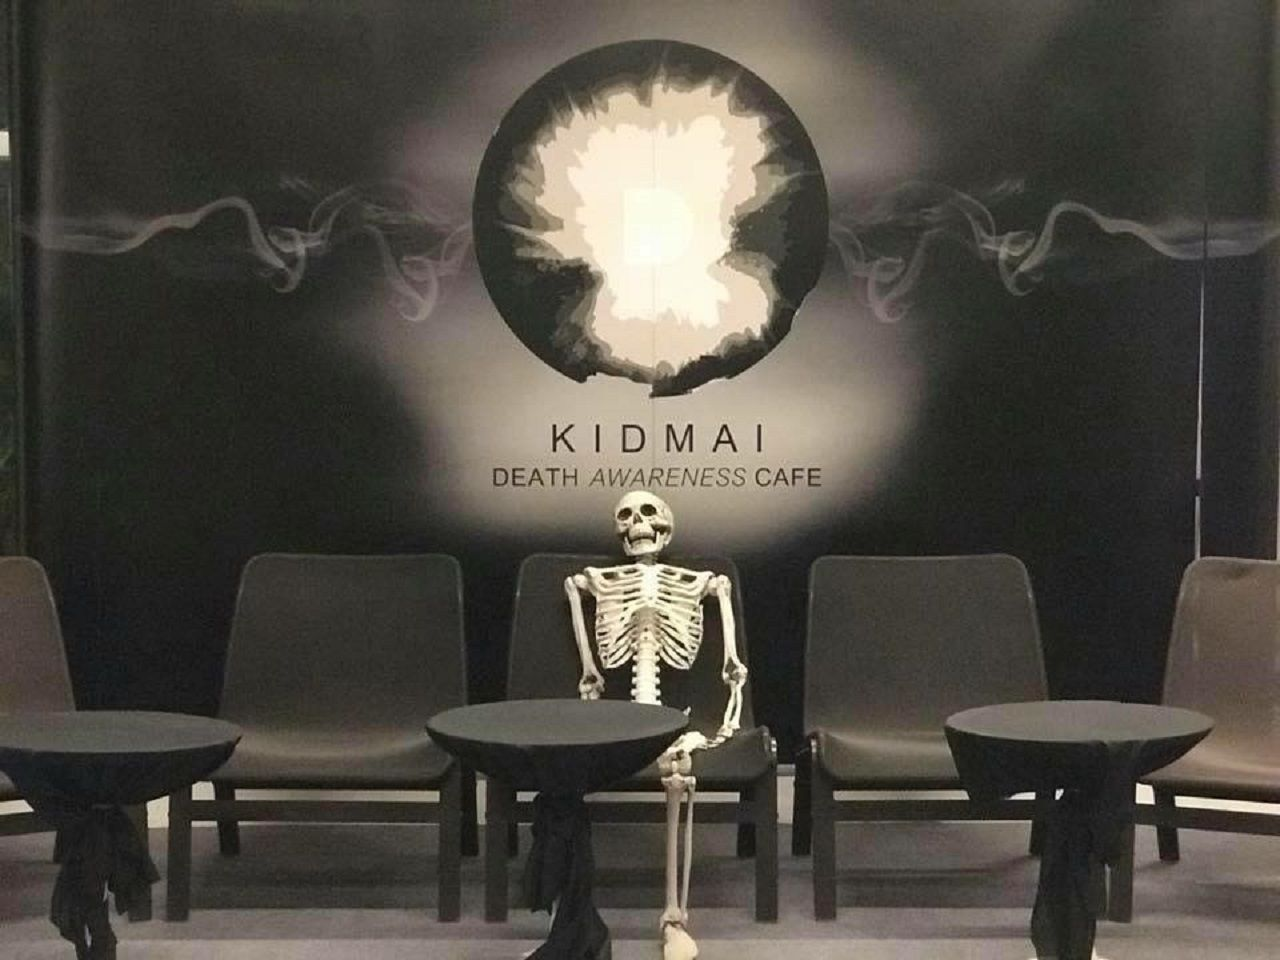 Kid Mai Death Awareness Cafe in Thailand